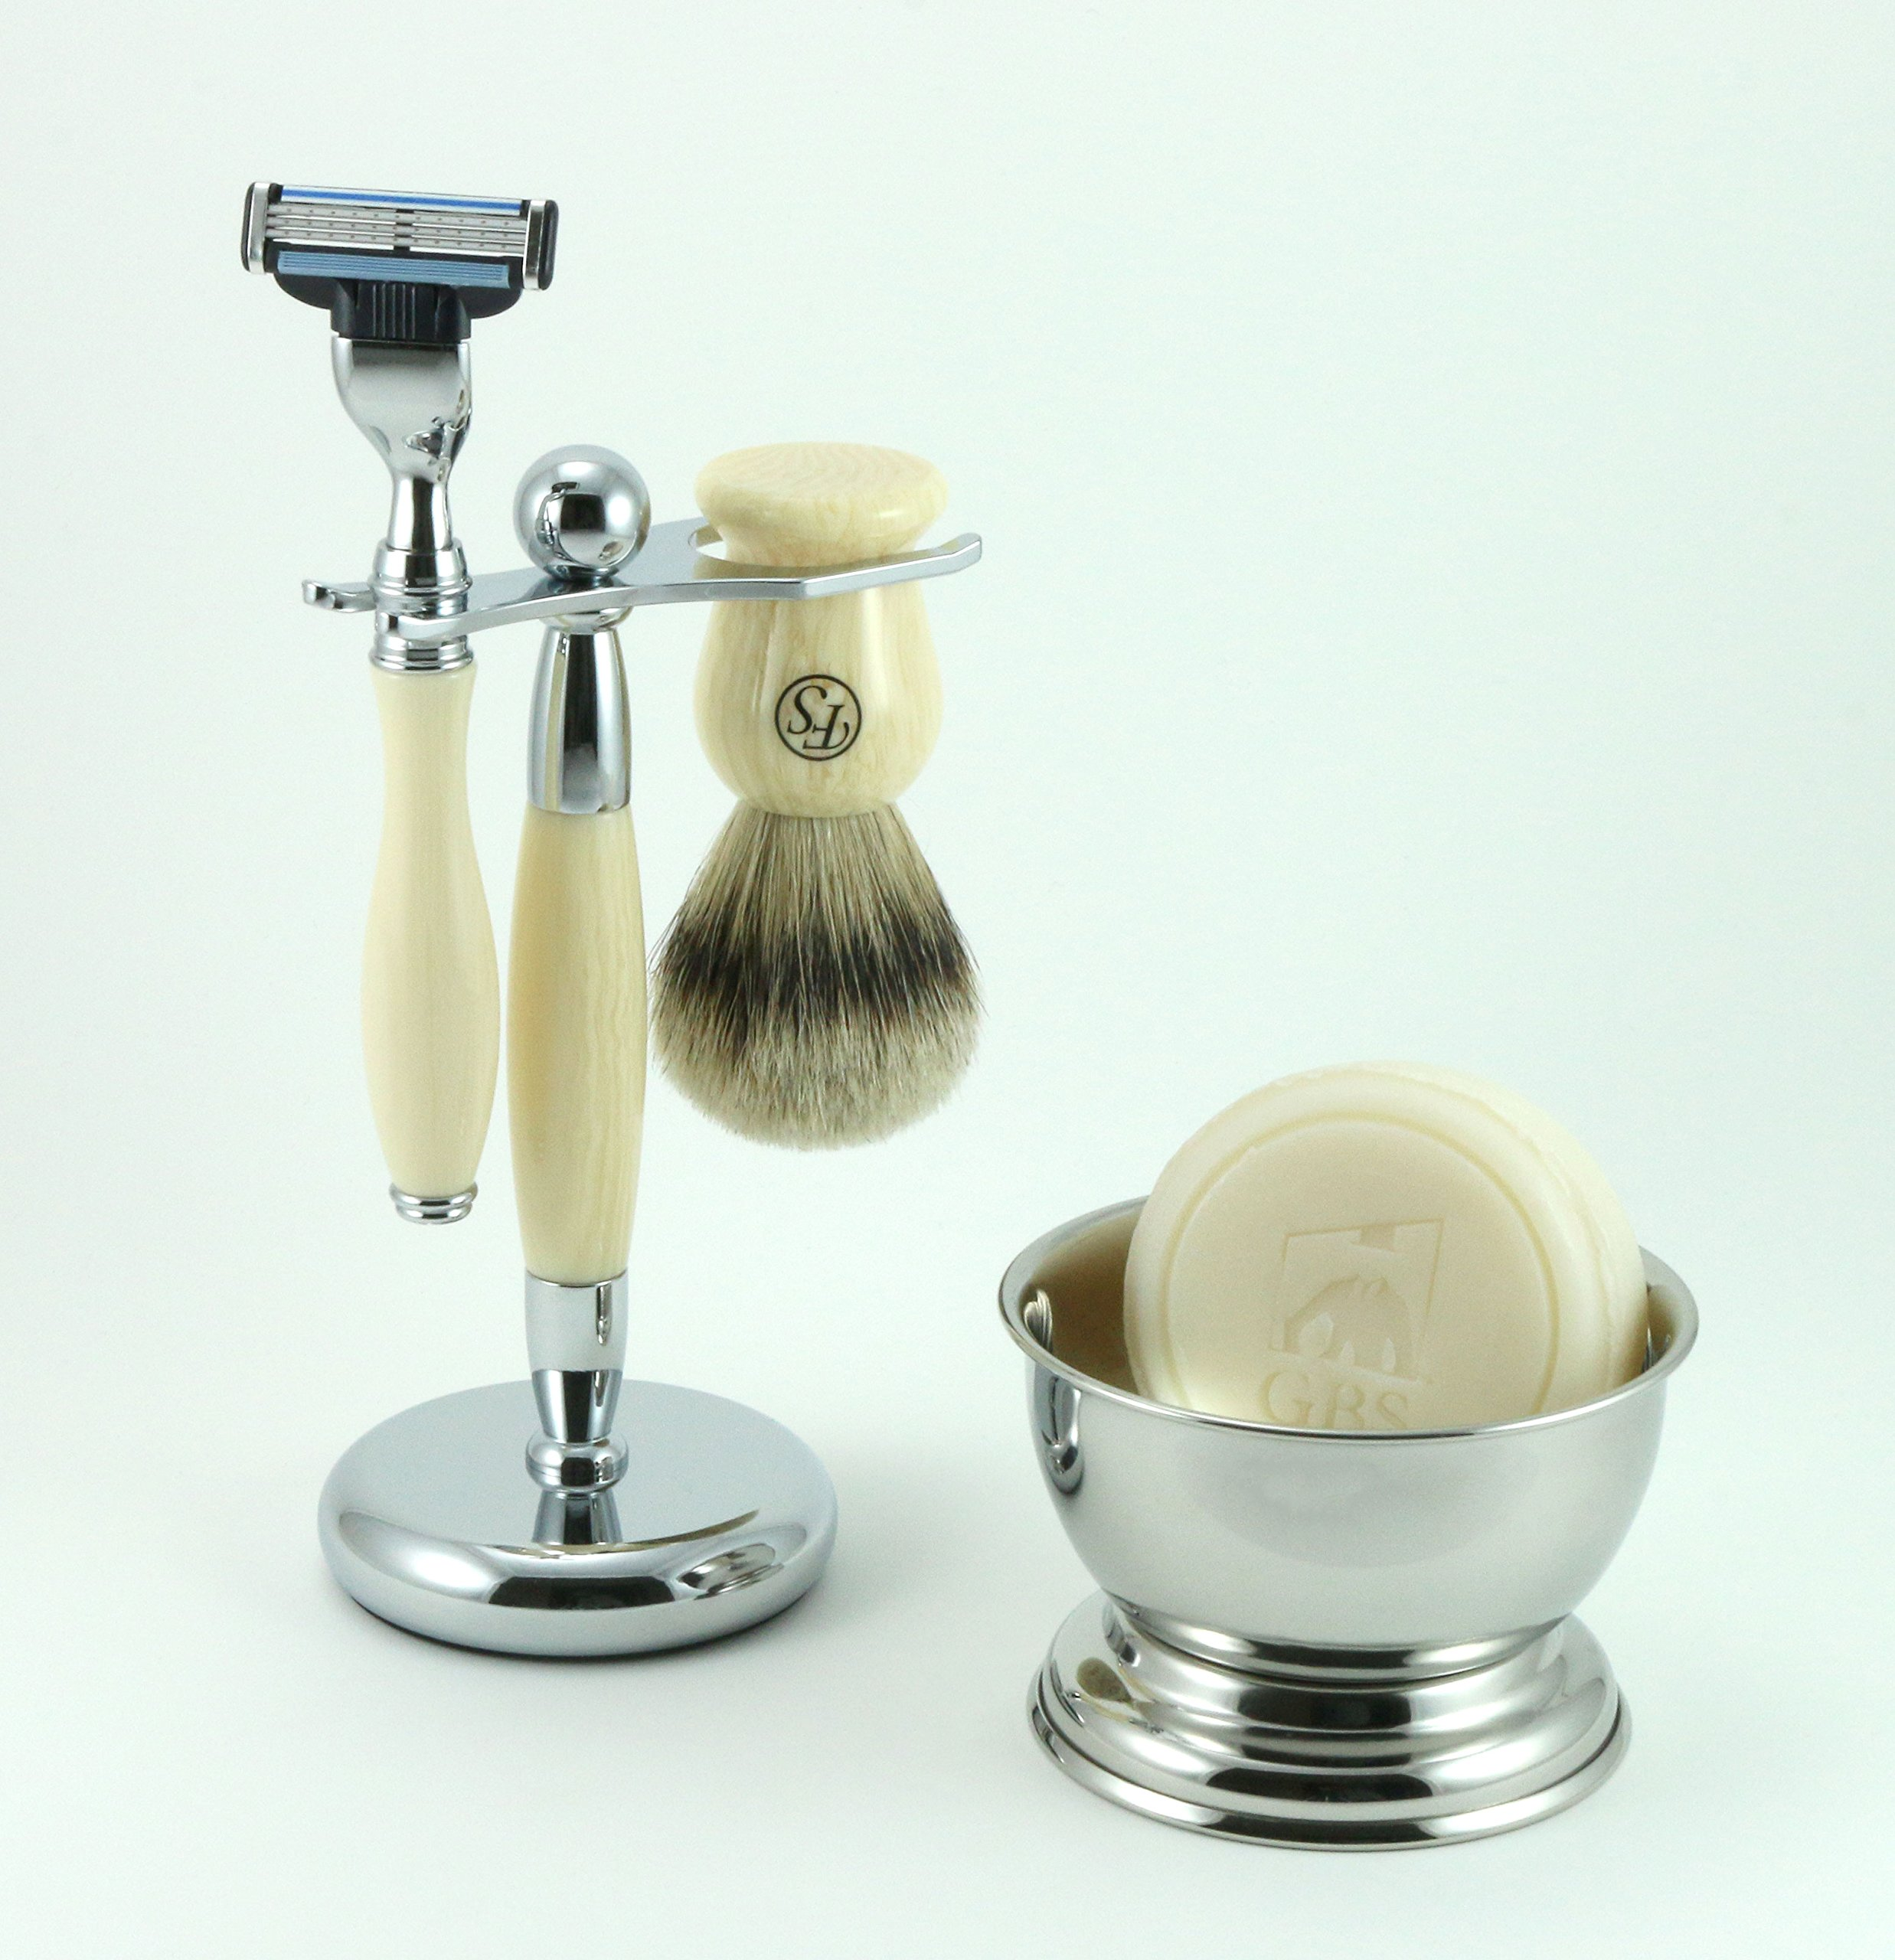 Men's Grooming Set with Fs 100% Silvertip Badger Ivory Brush, Ivory Brush and Razor Stand, Mach 3 Razor, 97% All Natural Gbs Ocean Driftwood Shave Soap, and Chrome Bowl